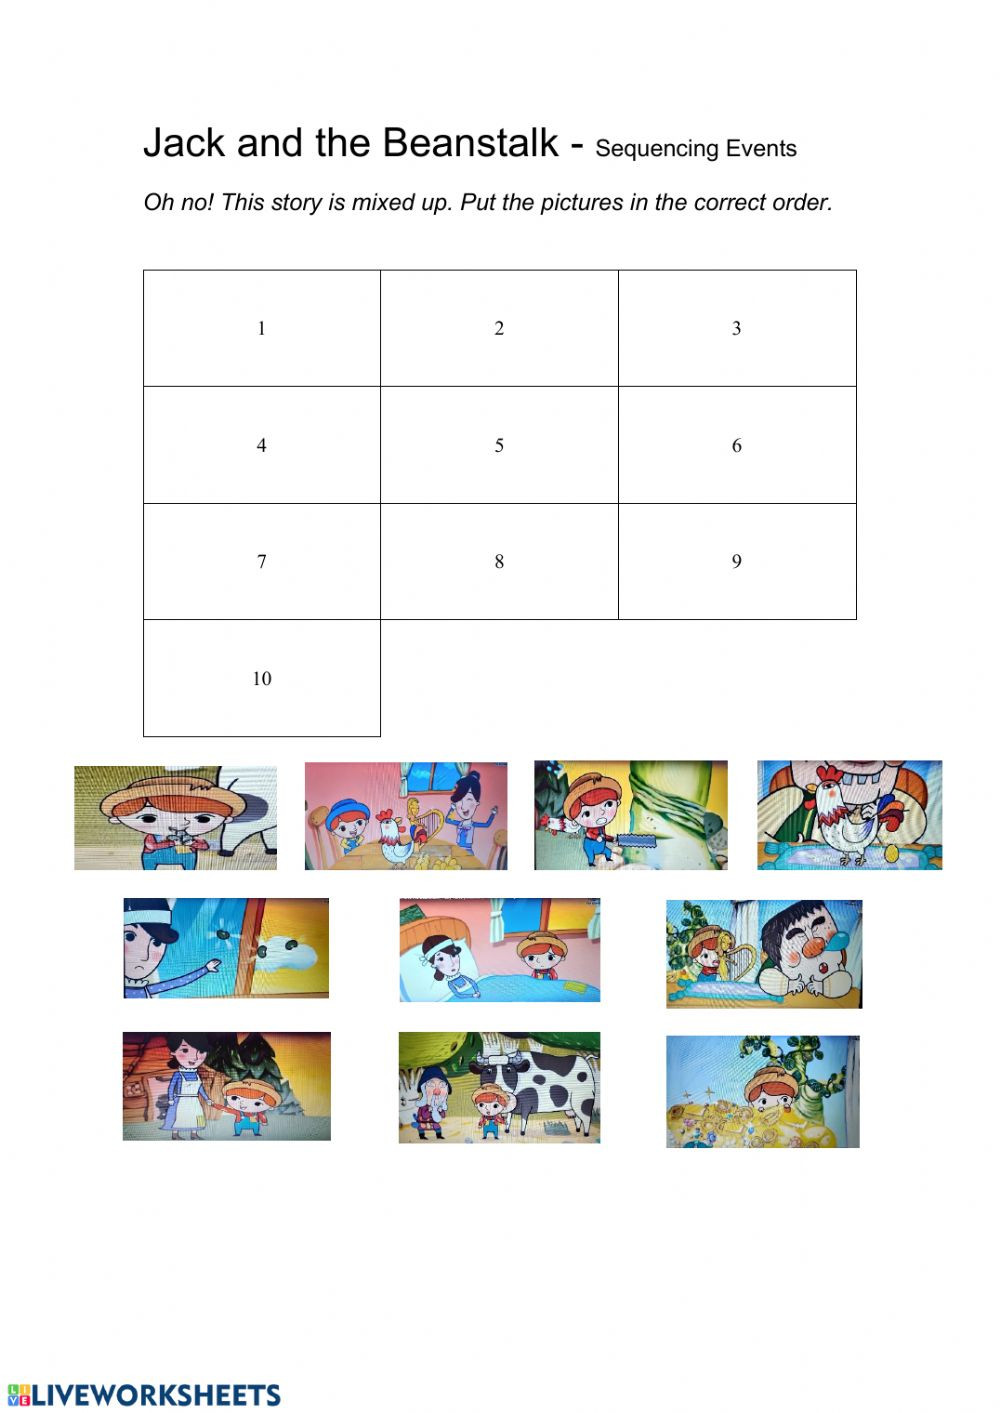 Sequencing events Worksheets Grade 6 Jack and the Beanstalk Sequencing events Interactive